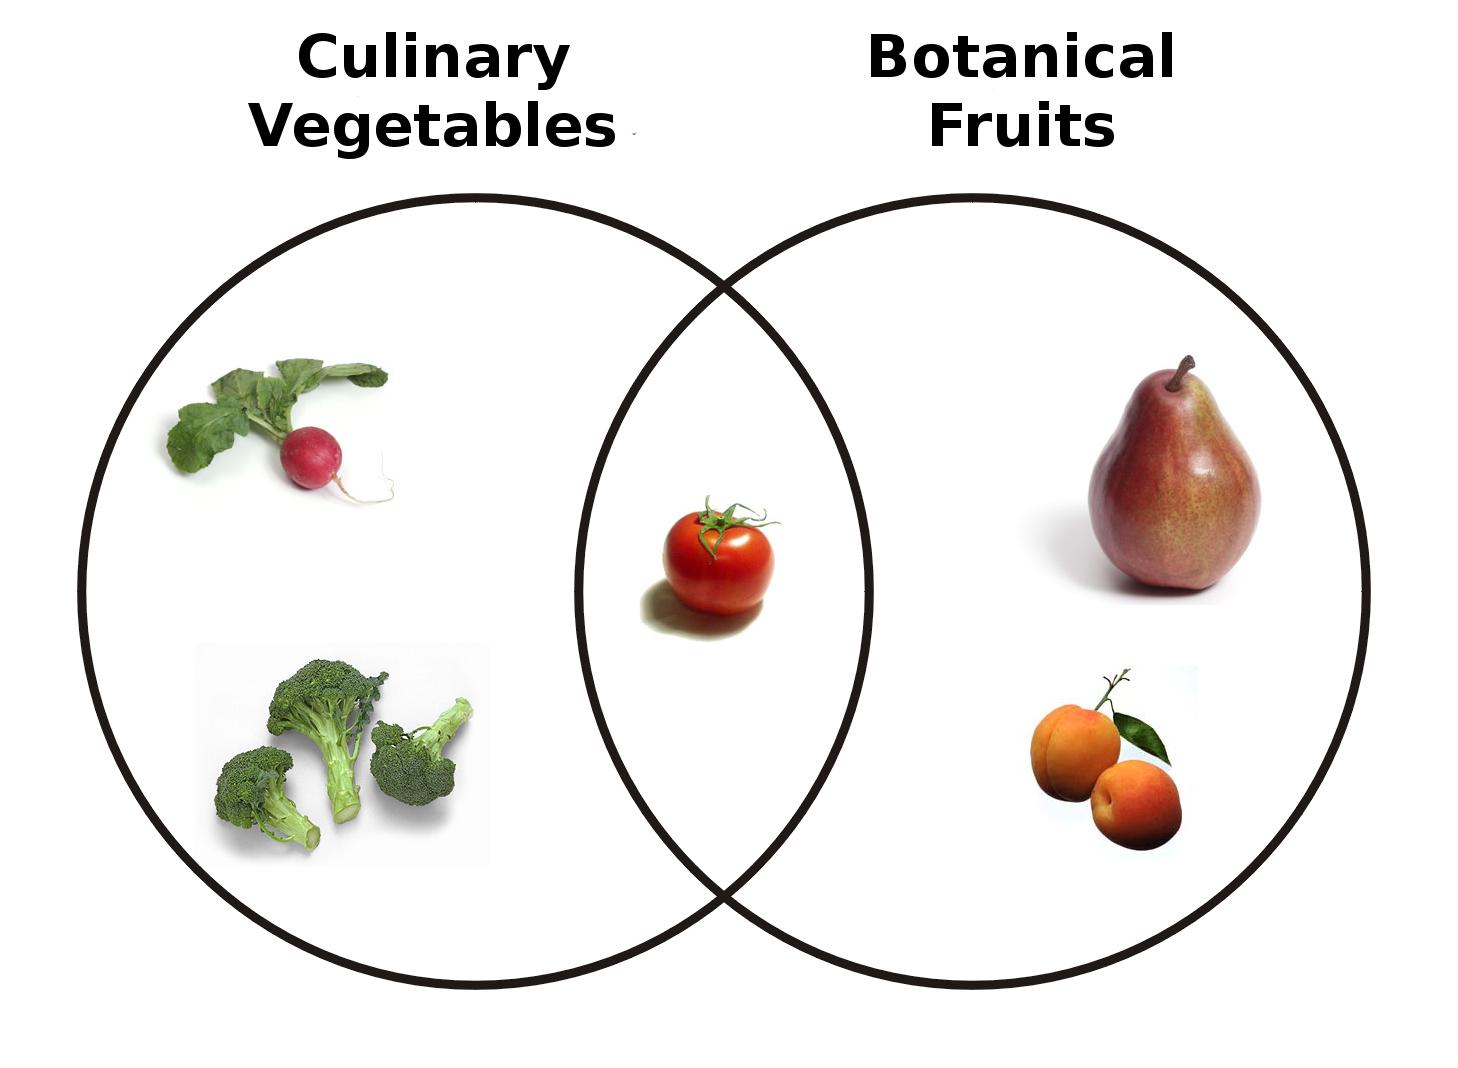 definitions fruit botanical gastronomical culinary